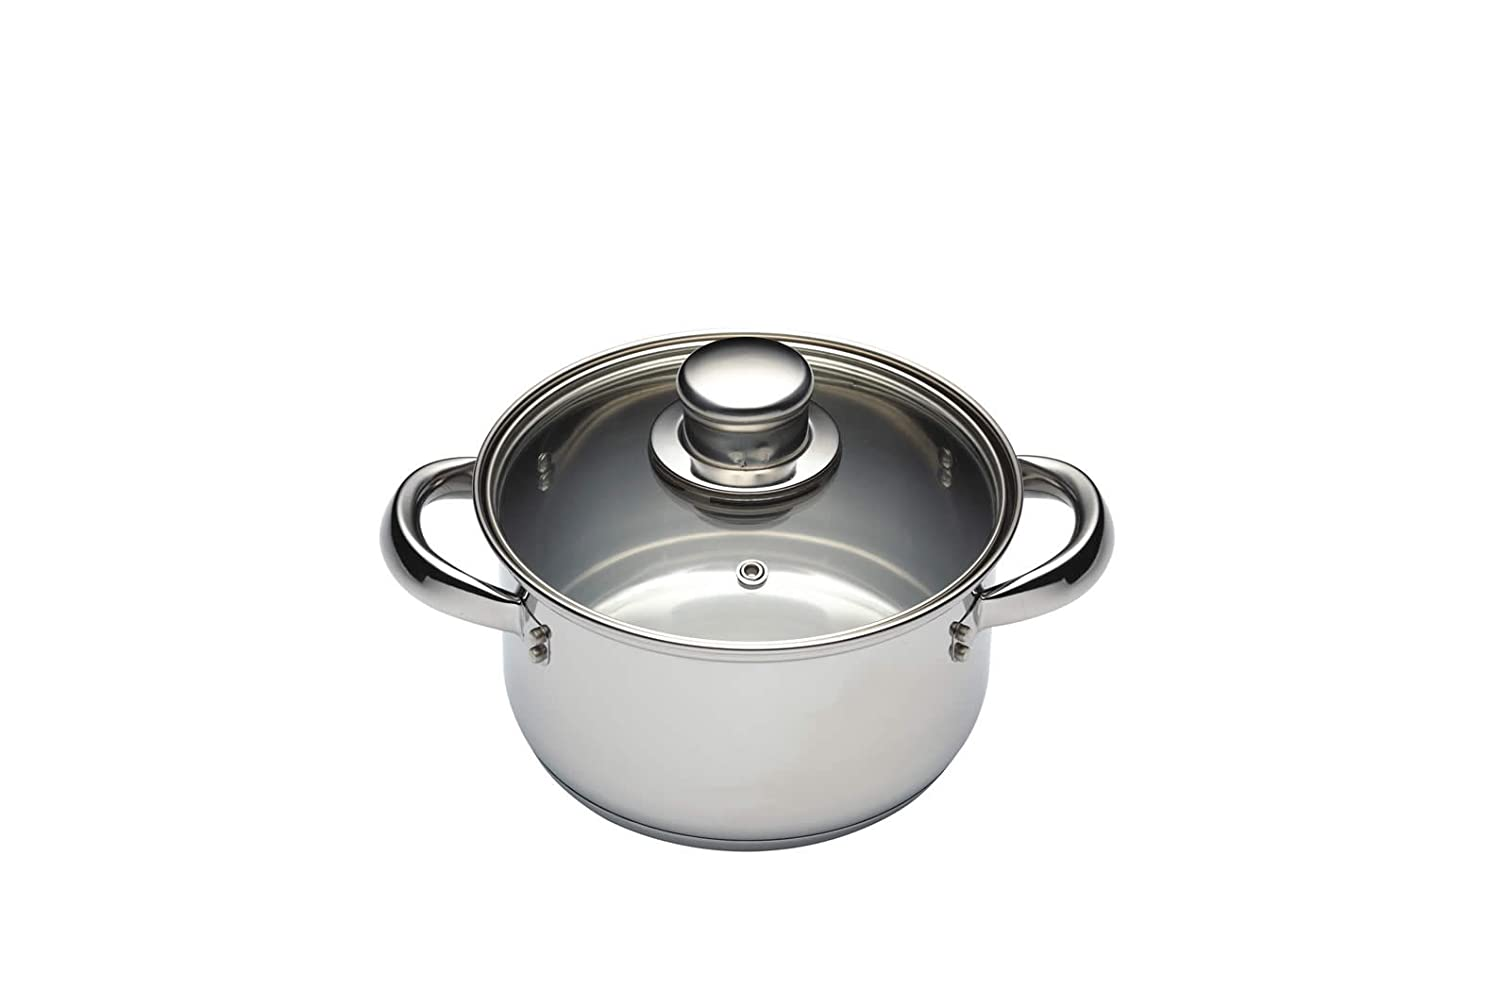 Kitchen Craft Clearview - Vaporera de 3 pisos de acero inoxidable (16 cm): Amazon.es: Hogar